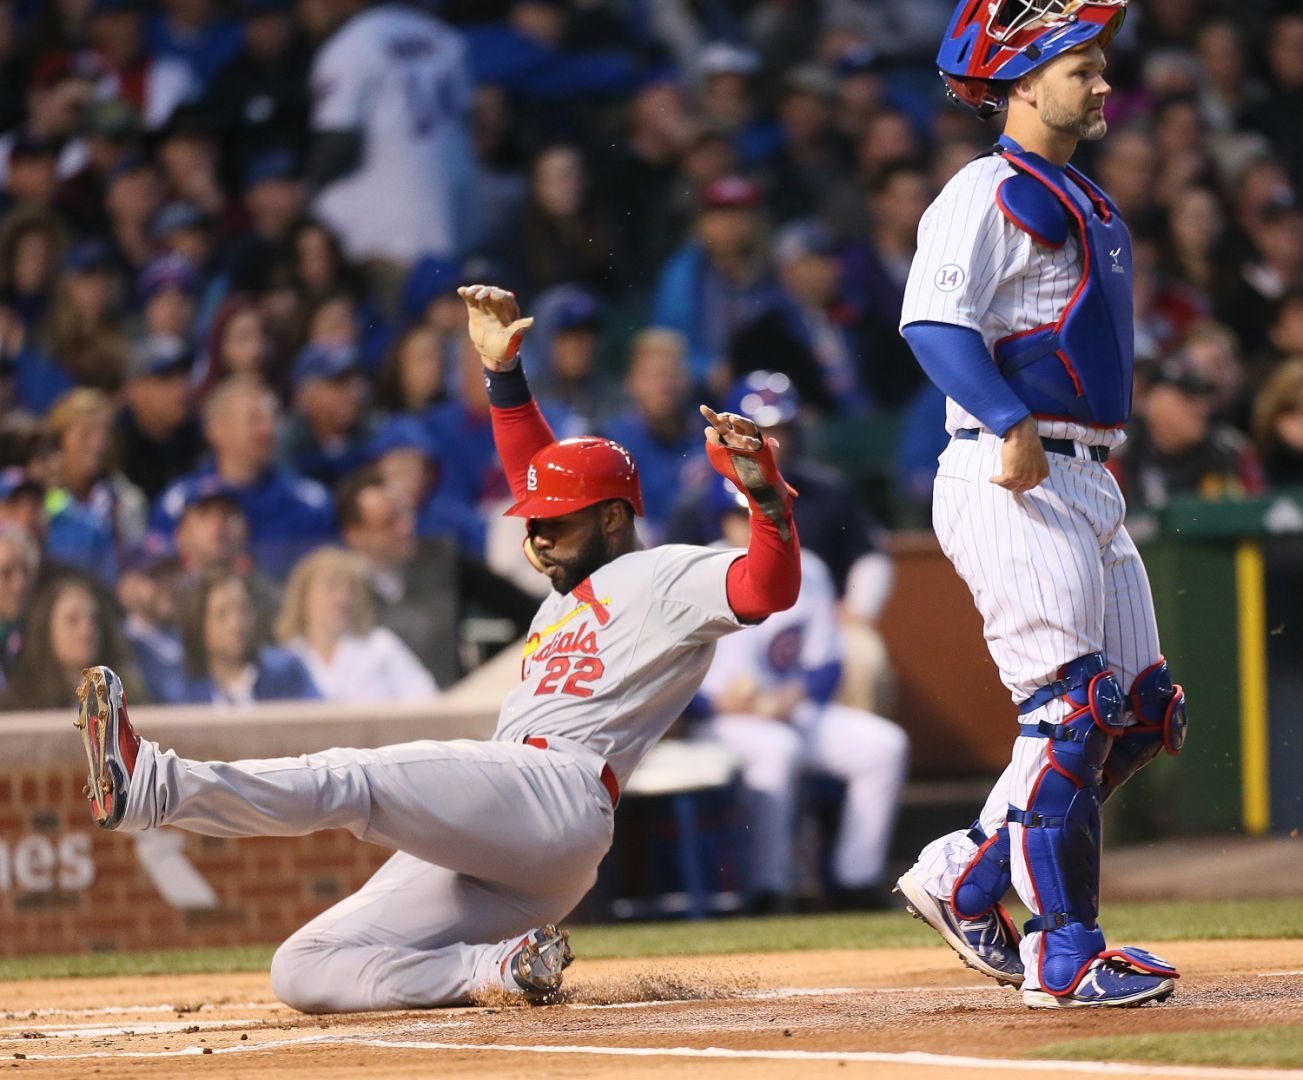 Heyward leads Cards over Cubs